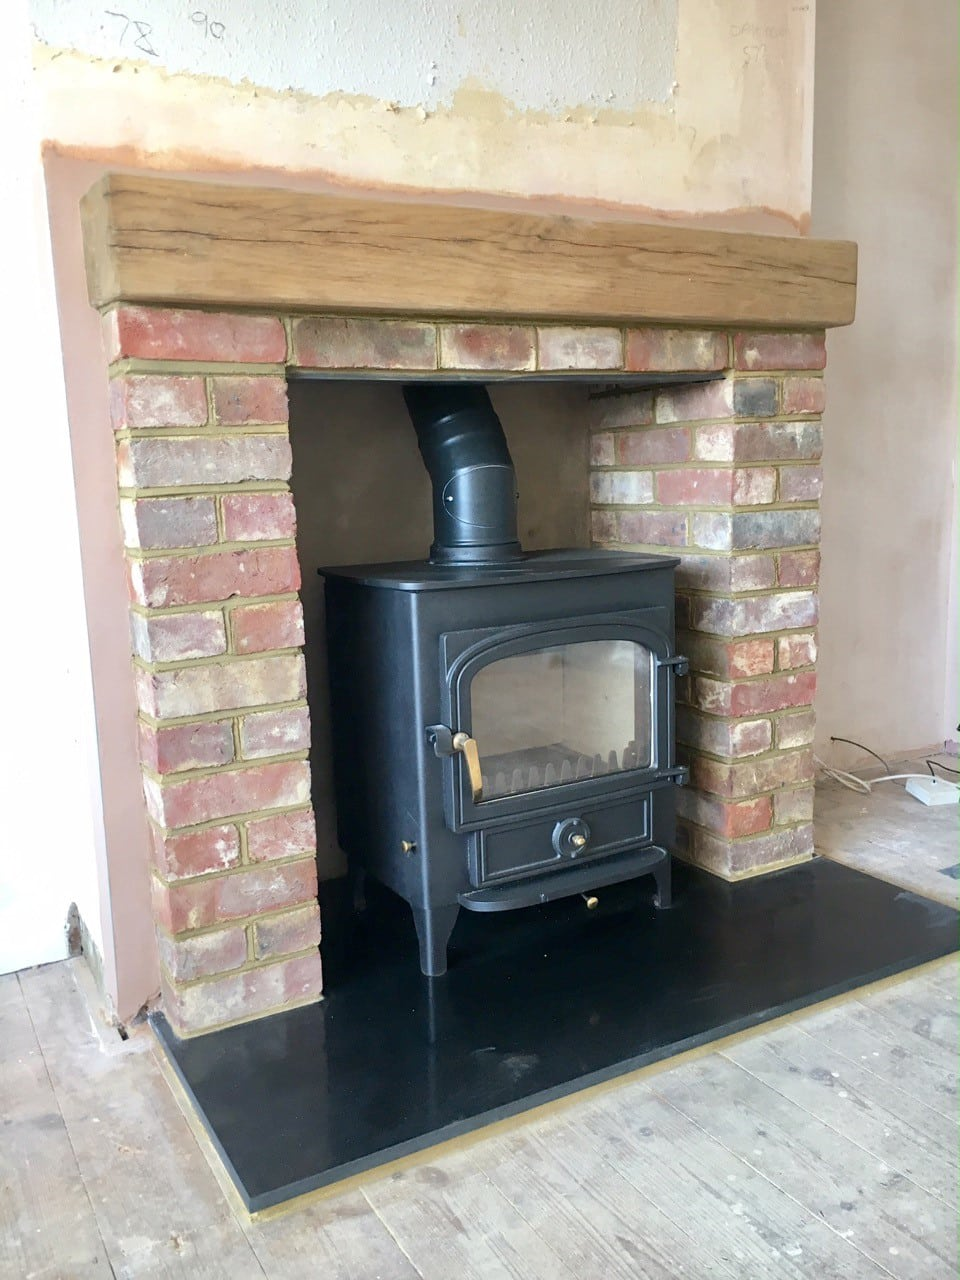 Broseley Evolution 5 Deluxe woodburning stove/